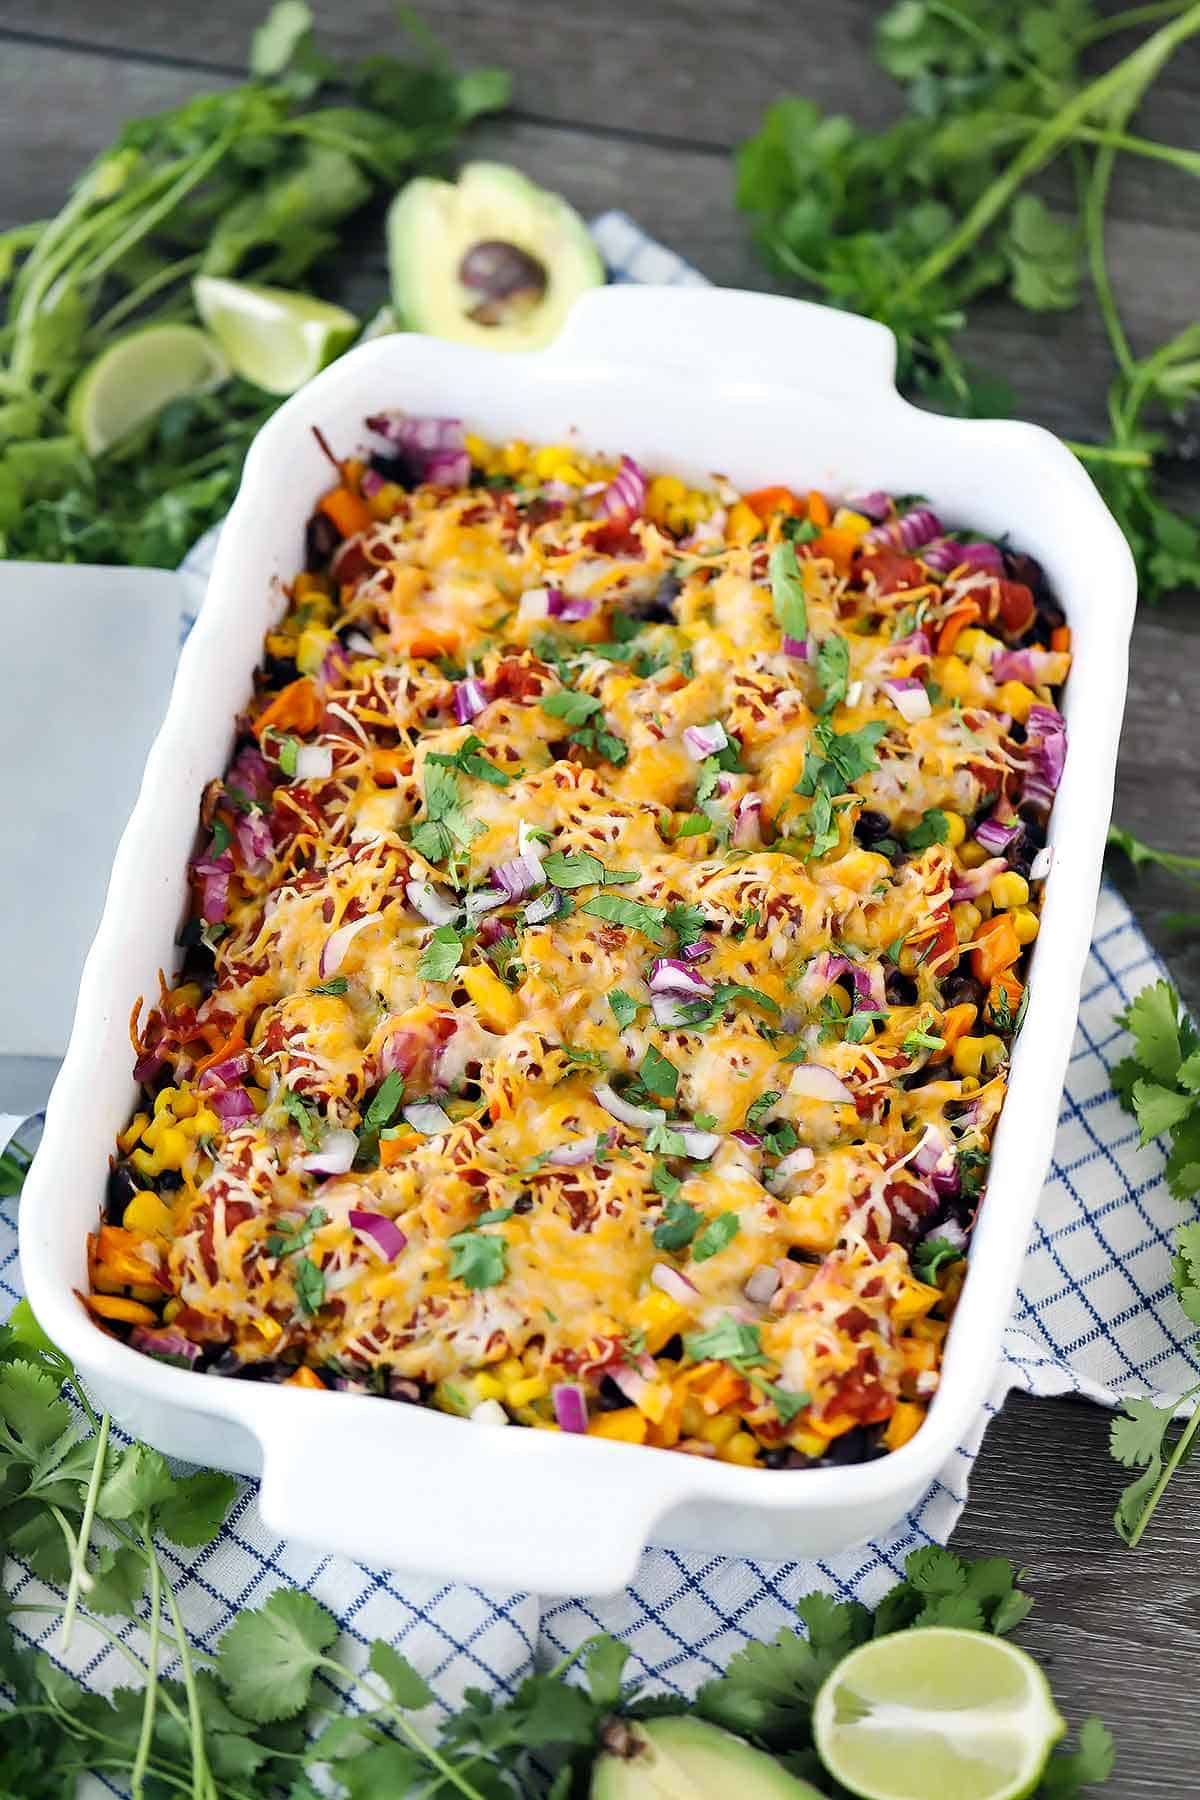 A casserole dish with Mexican lasagna